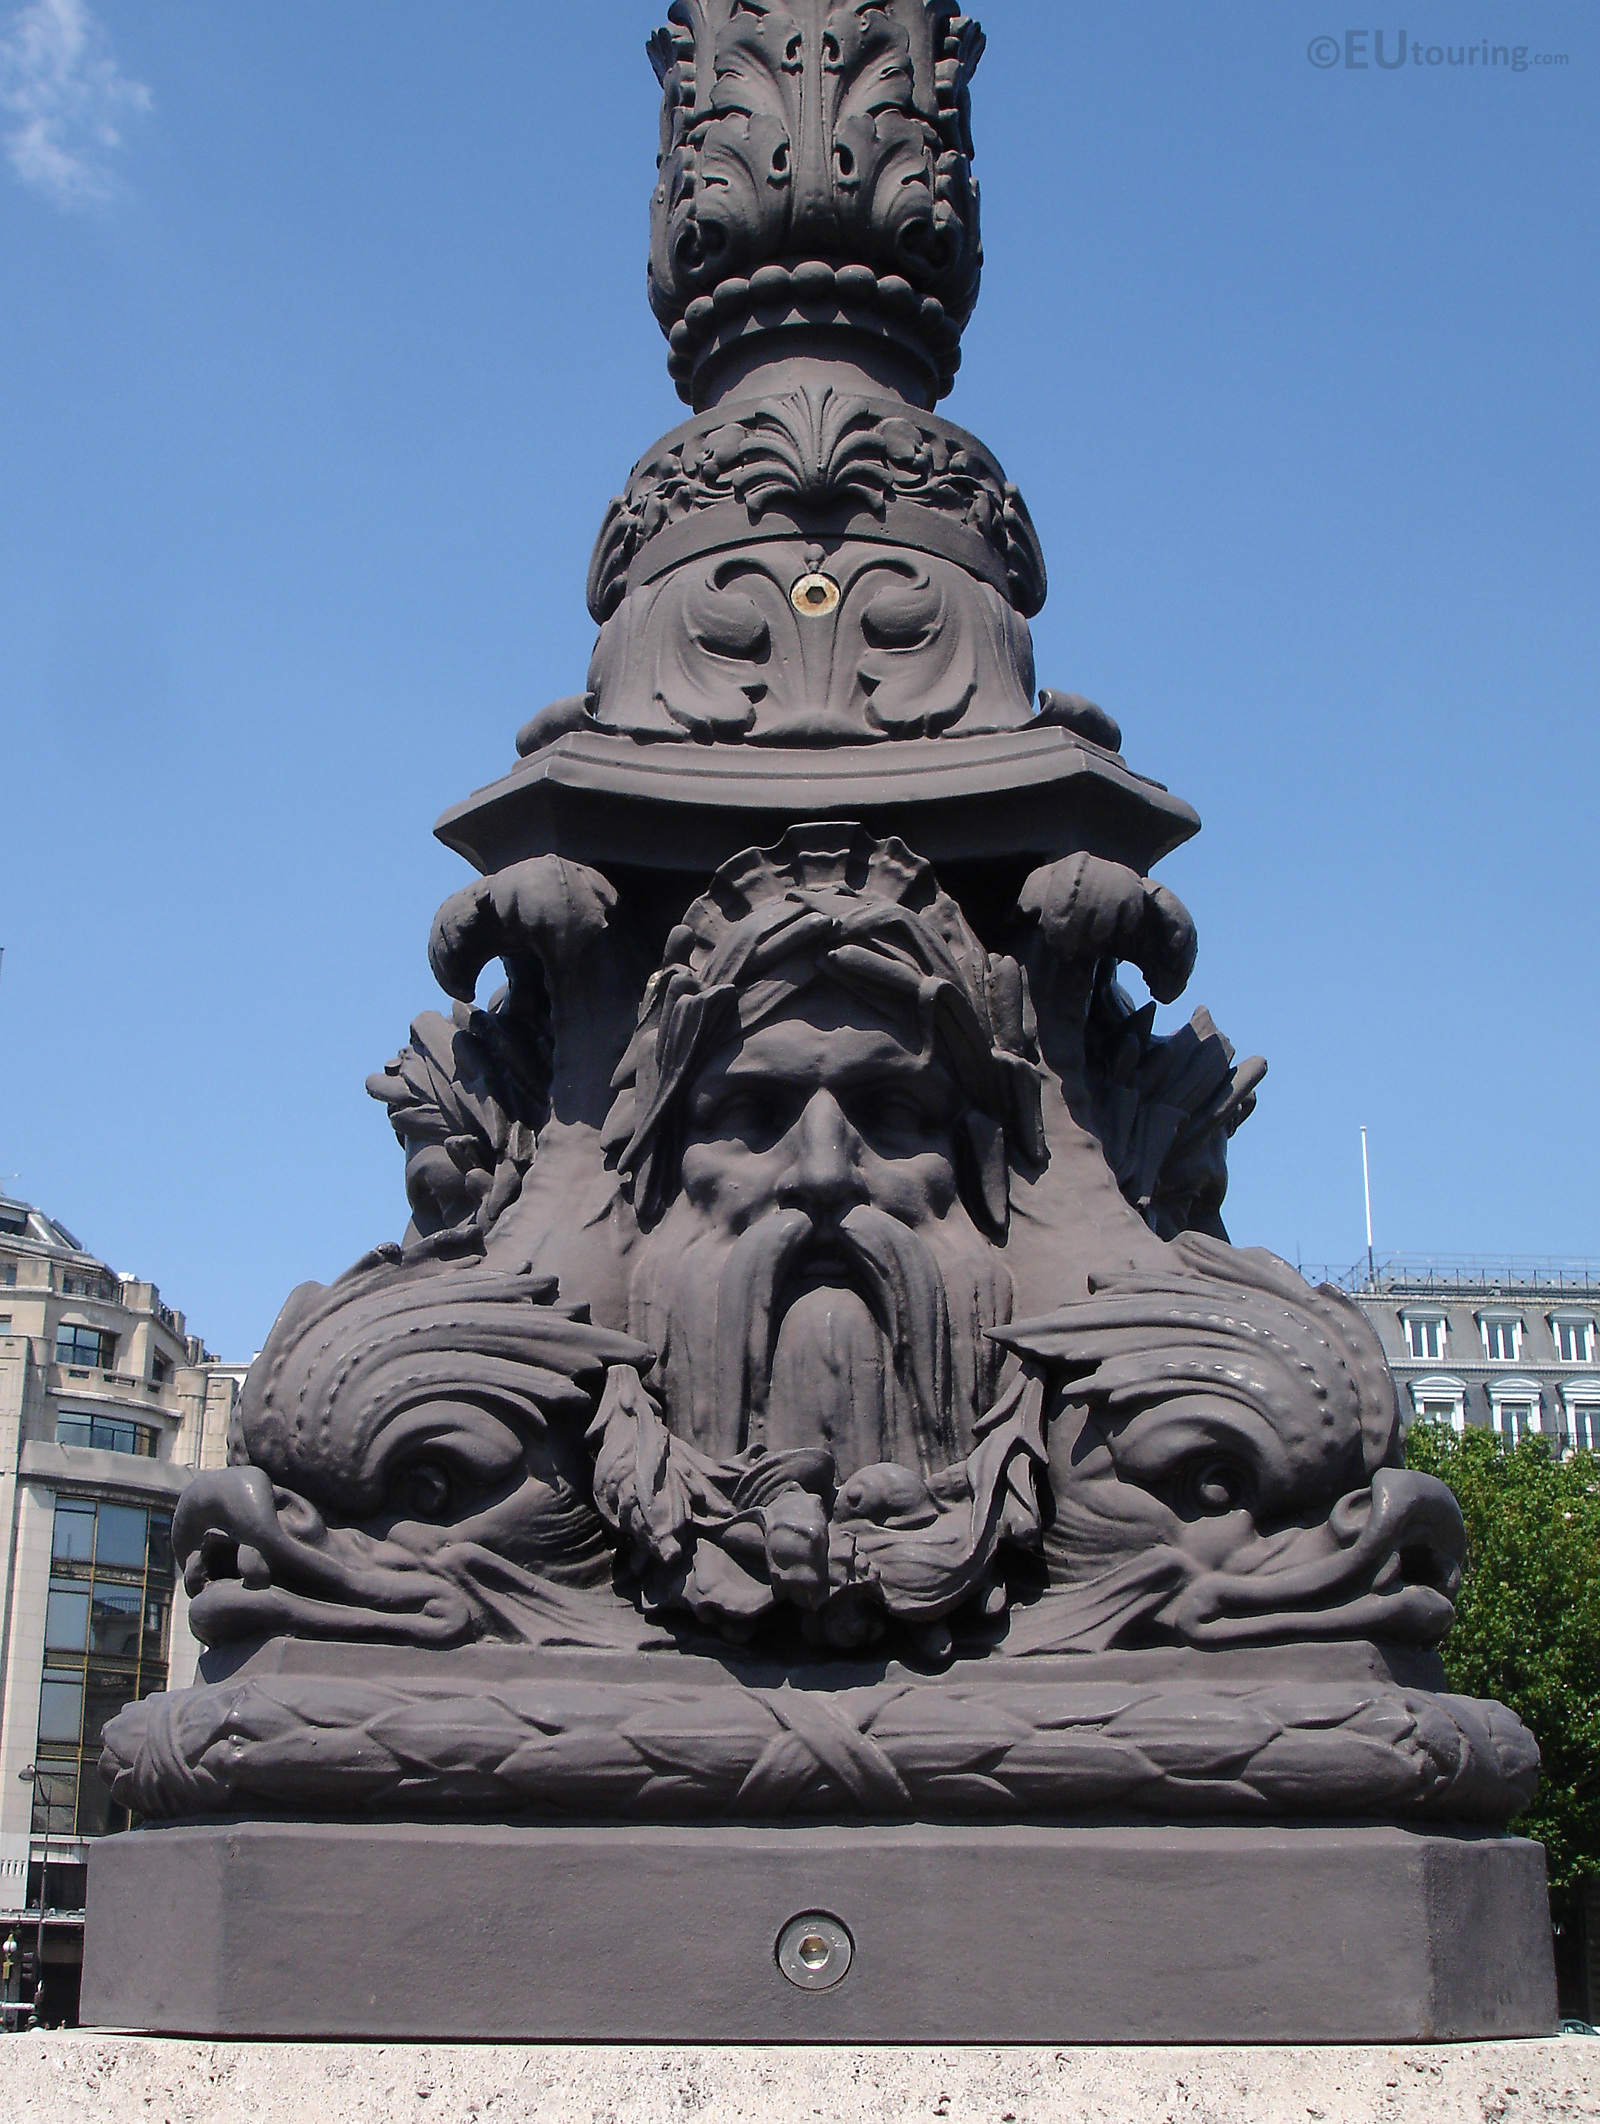 Detailed lamp posts on the Pont Neuf